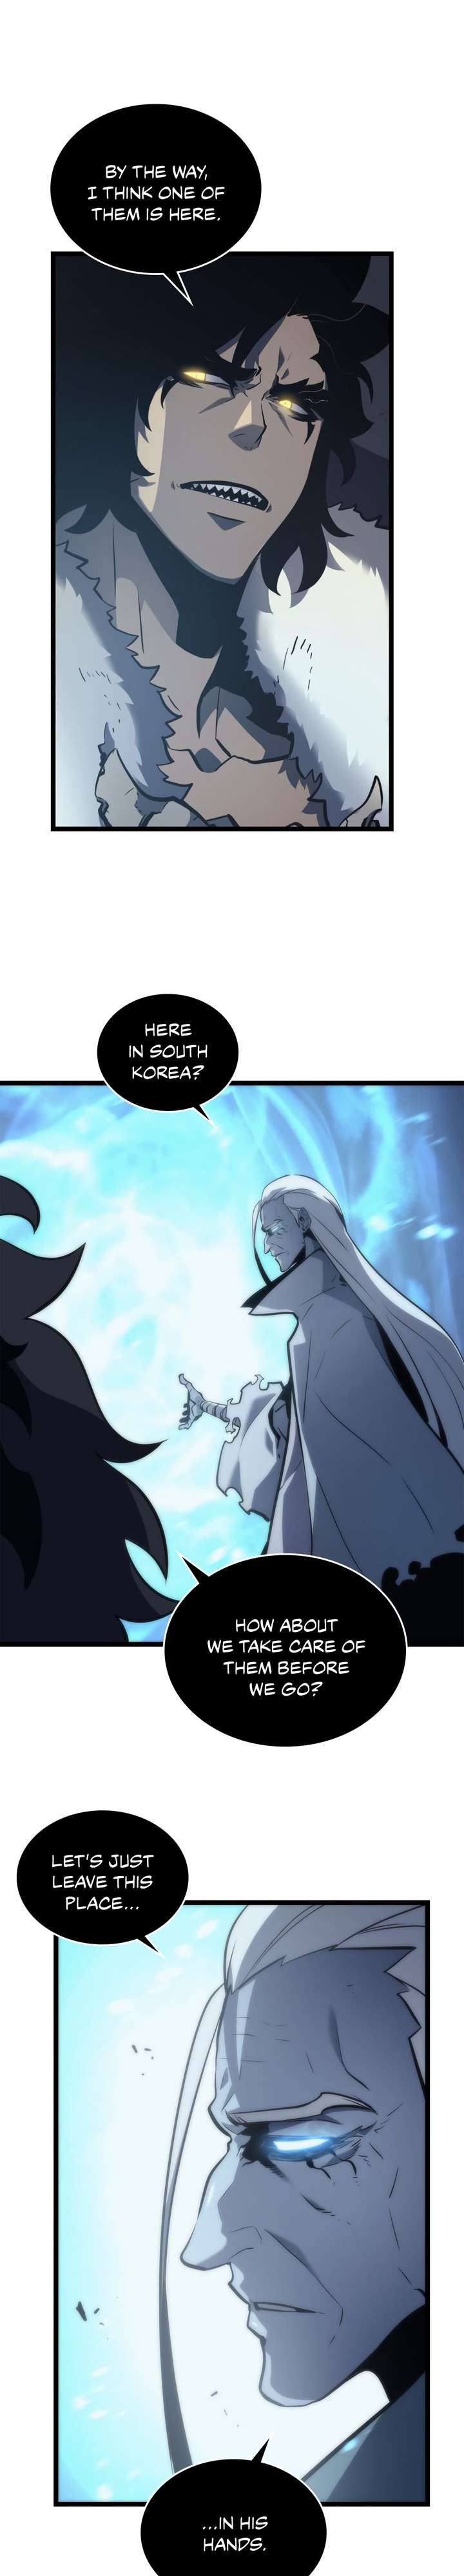 Solo Leveling Chapter 107 Page 26